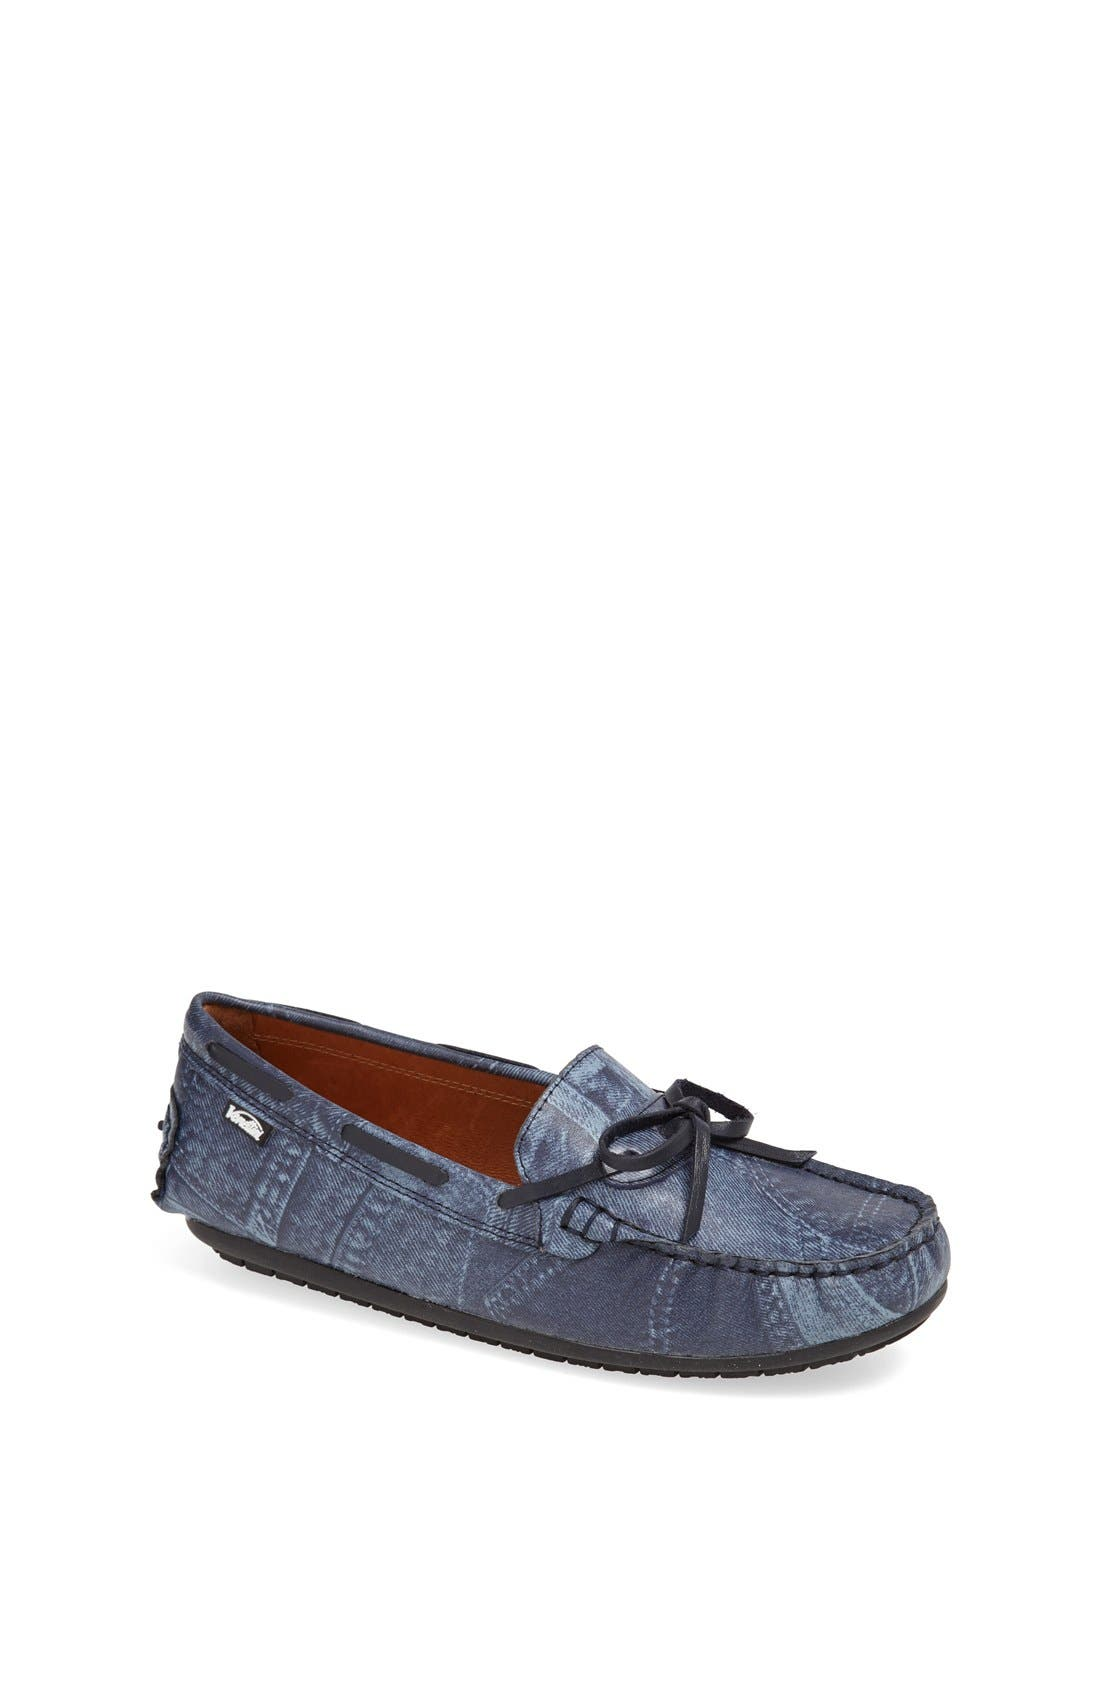 Main Image - Venettini 'Morgan' Loafer (Toddler, Little Kid & Big Kid)